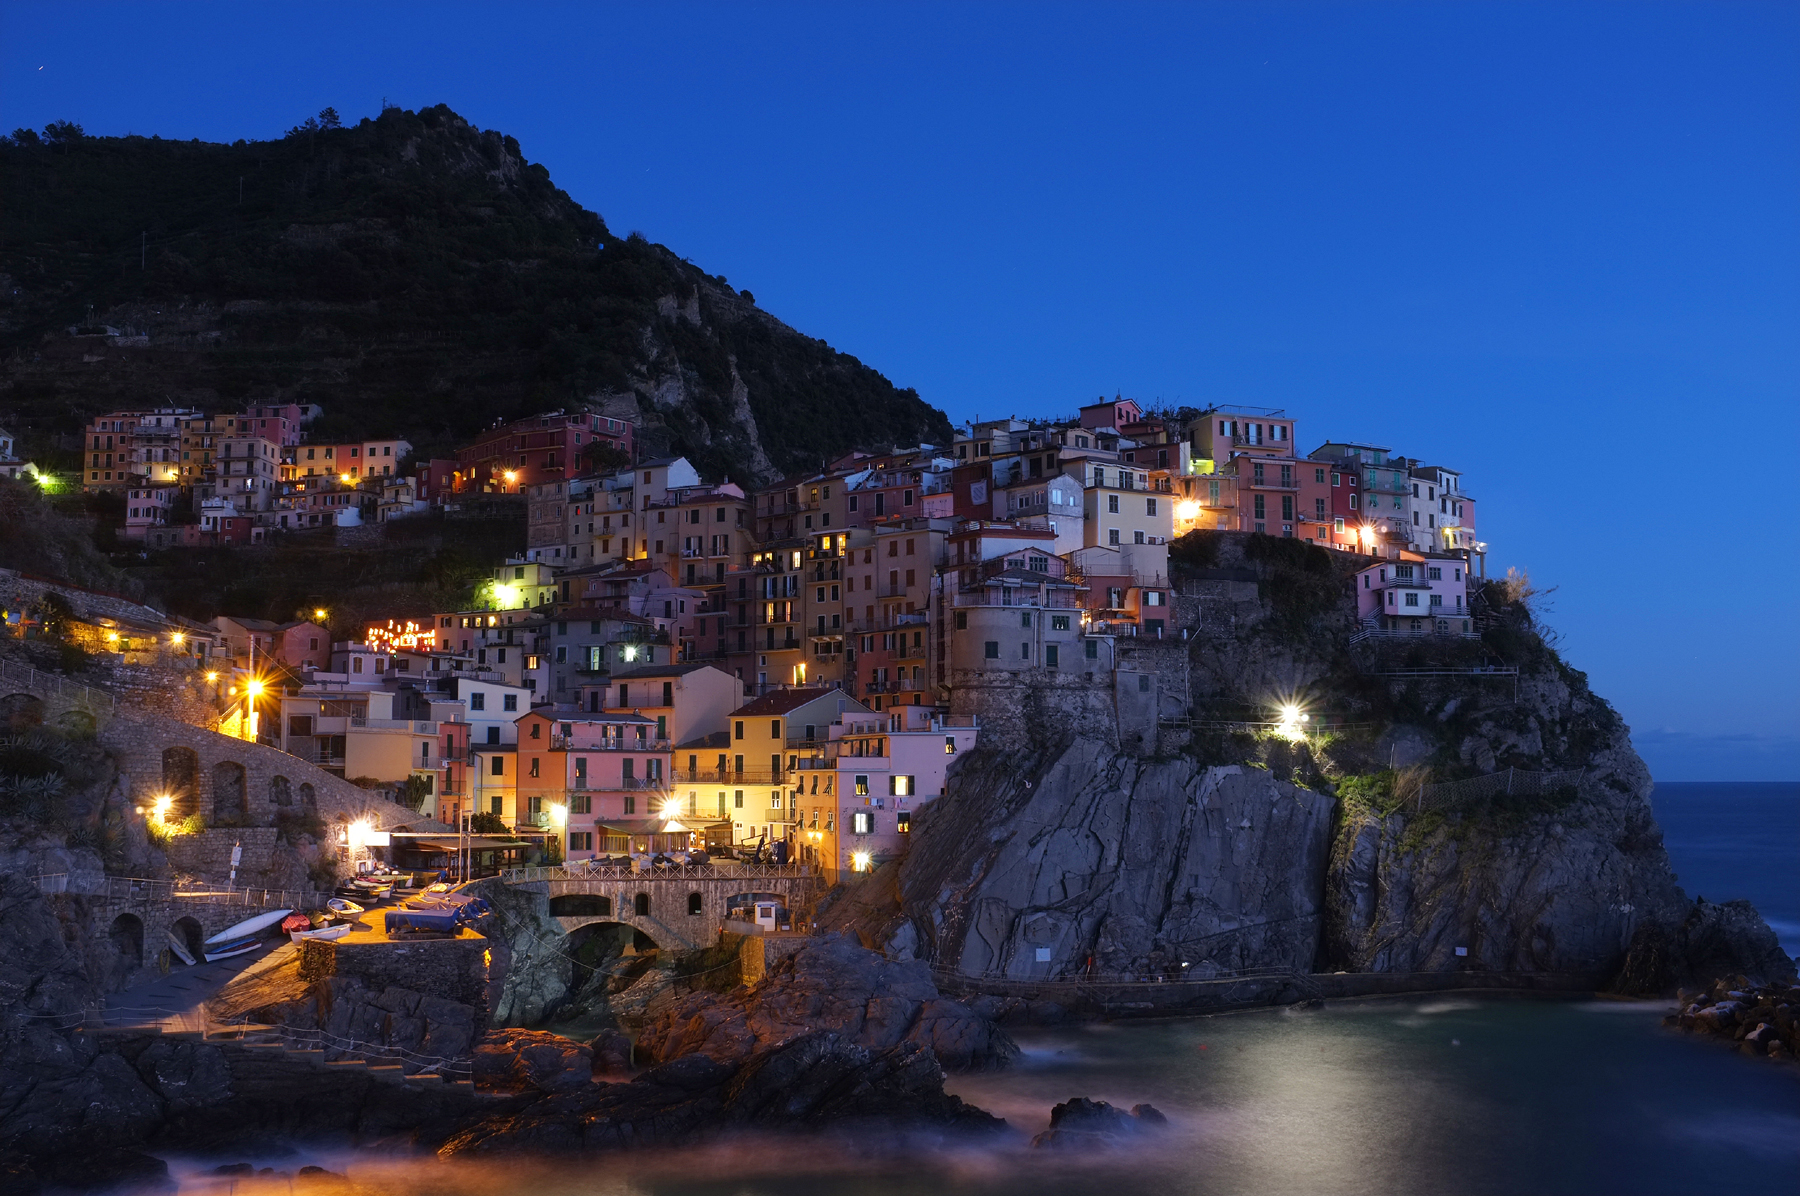 Hillside buildings at night 52276